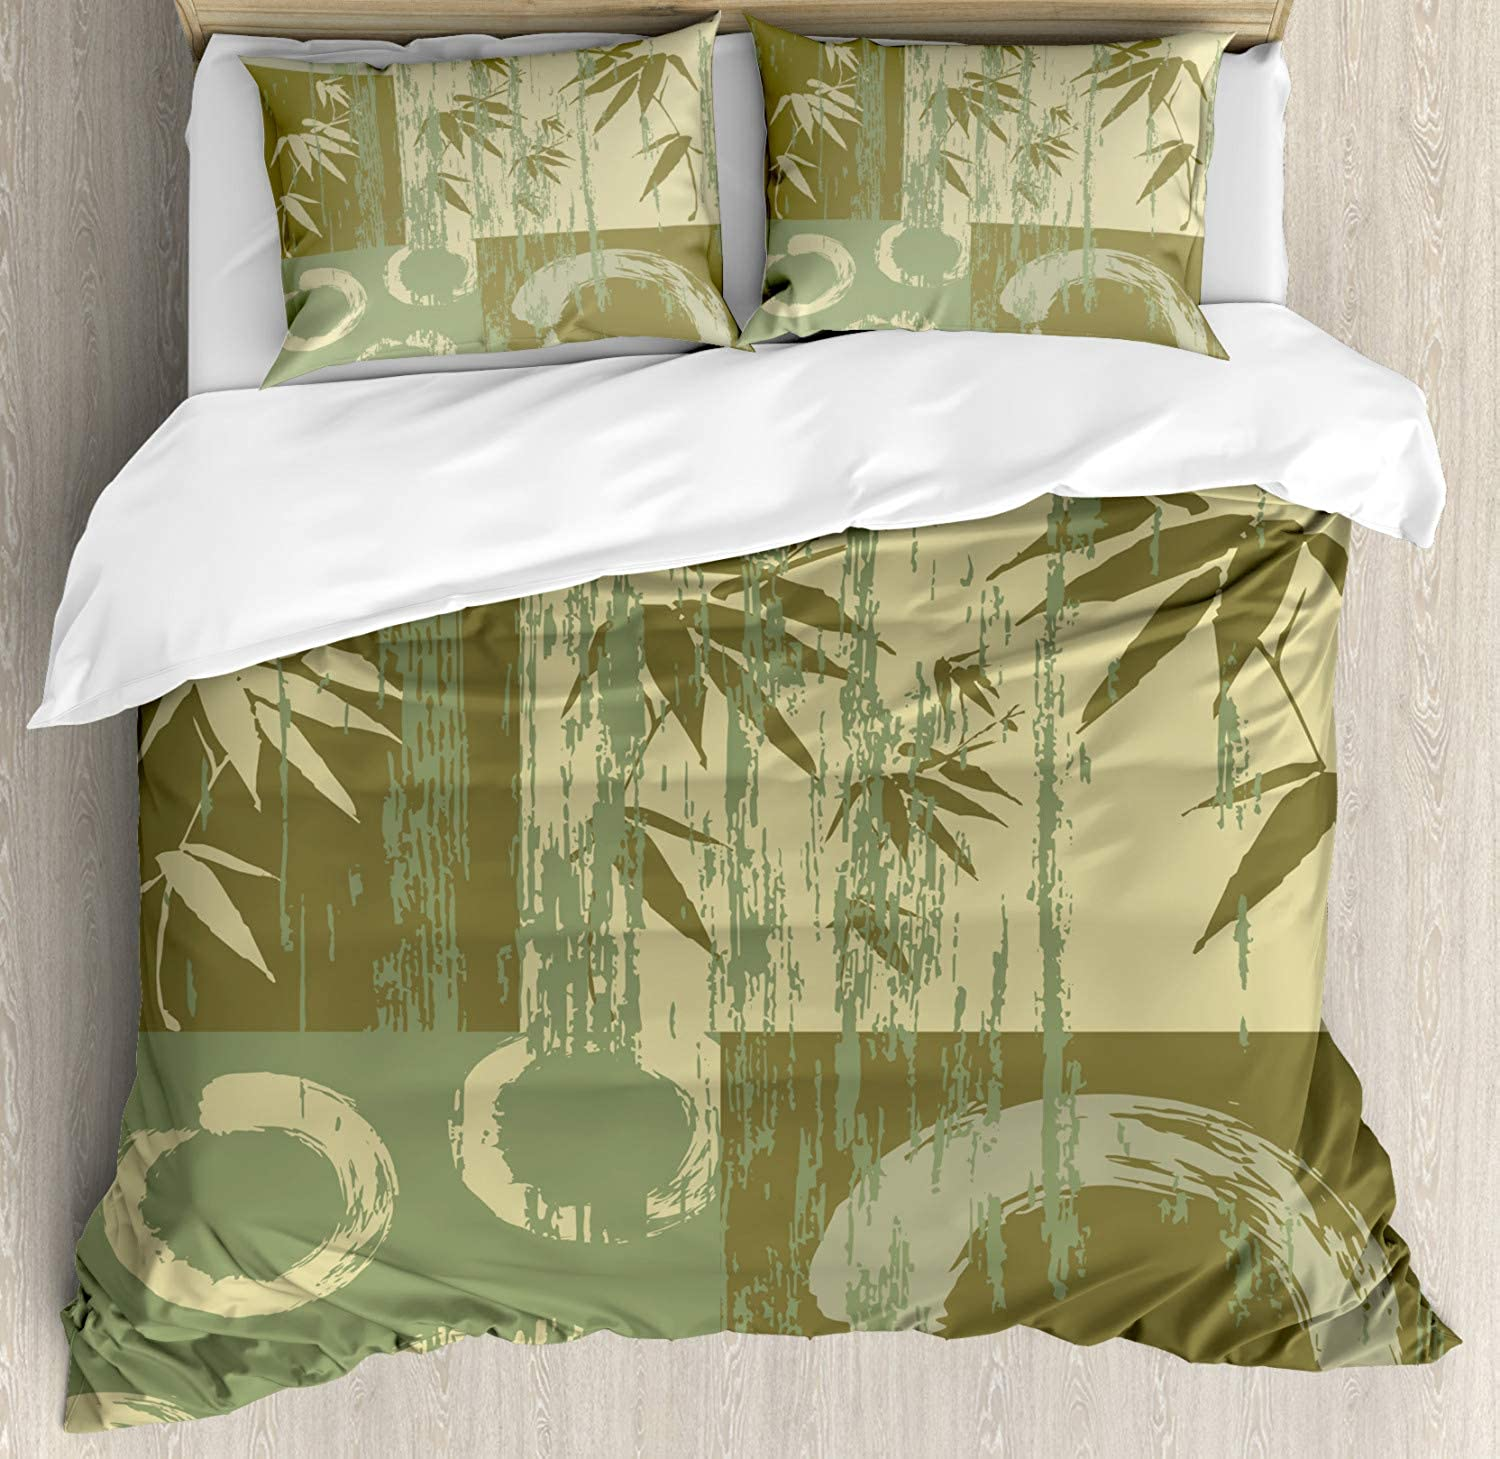 Ambesonne Bamboo House Decor Duvet Cover Set, Zen Circle and Bamboo Silhouette Over Vintage color Oriental Eastern Style Patchwork Art Print, A 3 Piece Bedding Set with Pillow Shams, Queen Full, Green